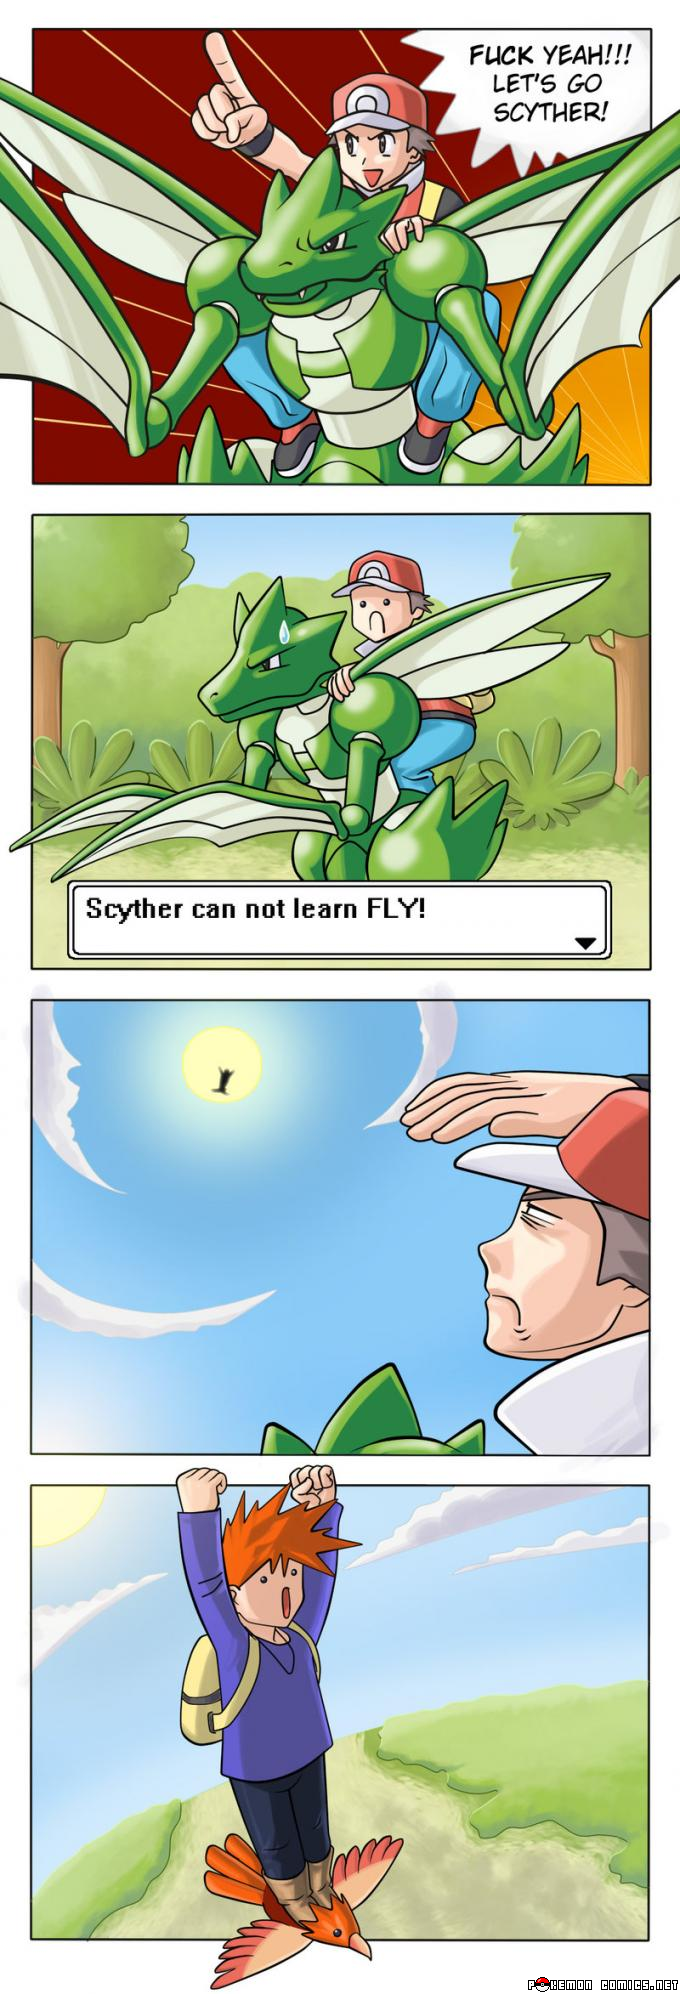 https://media.moddb.com/images/groups/1/3/2933/491-scyther-can-not-learn-fly-pokemon-comic.png